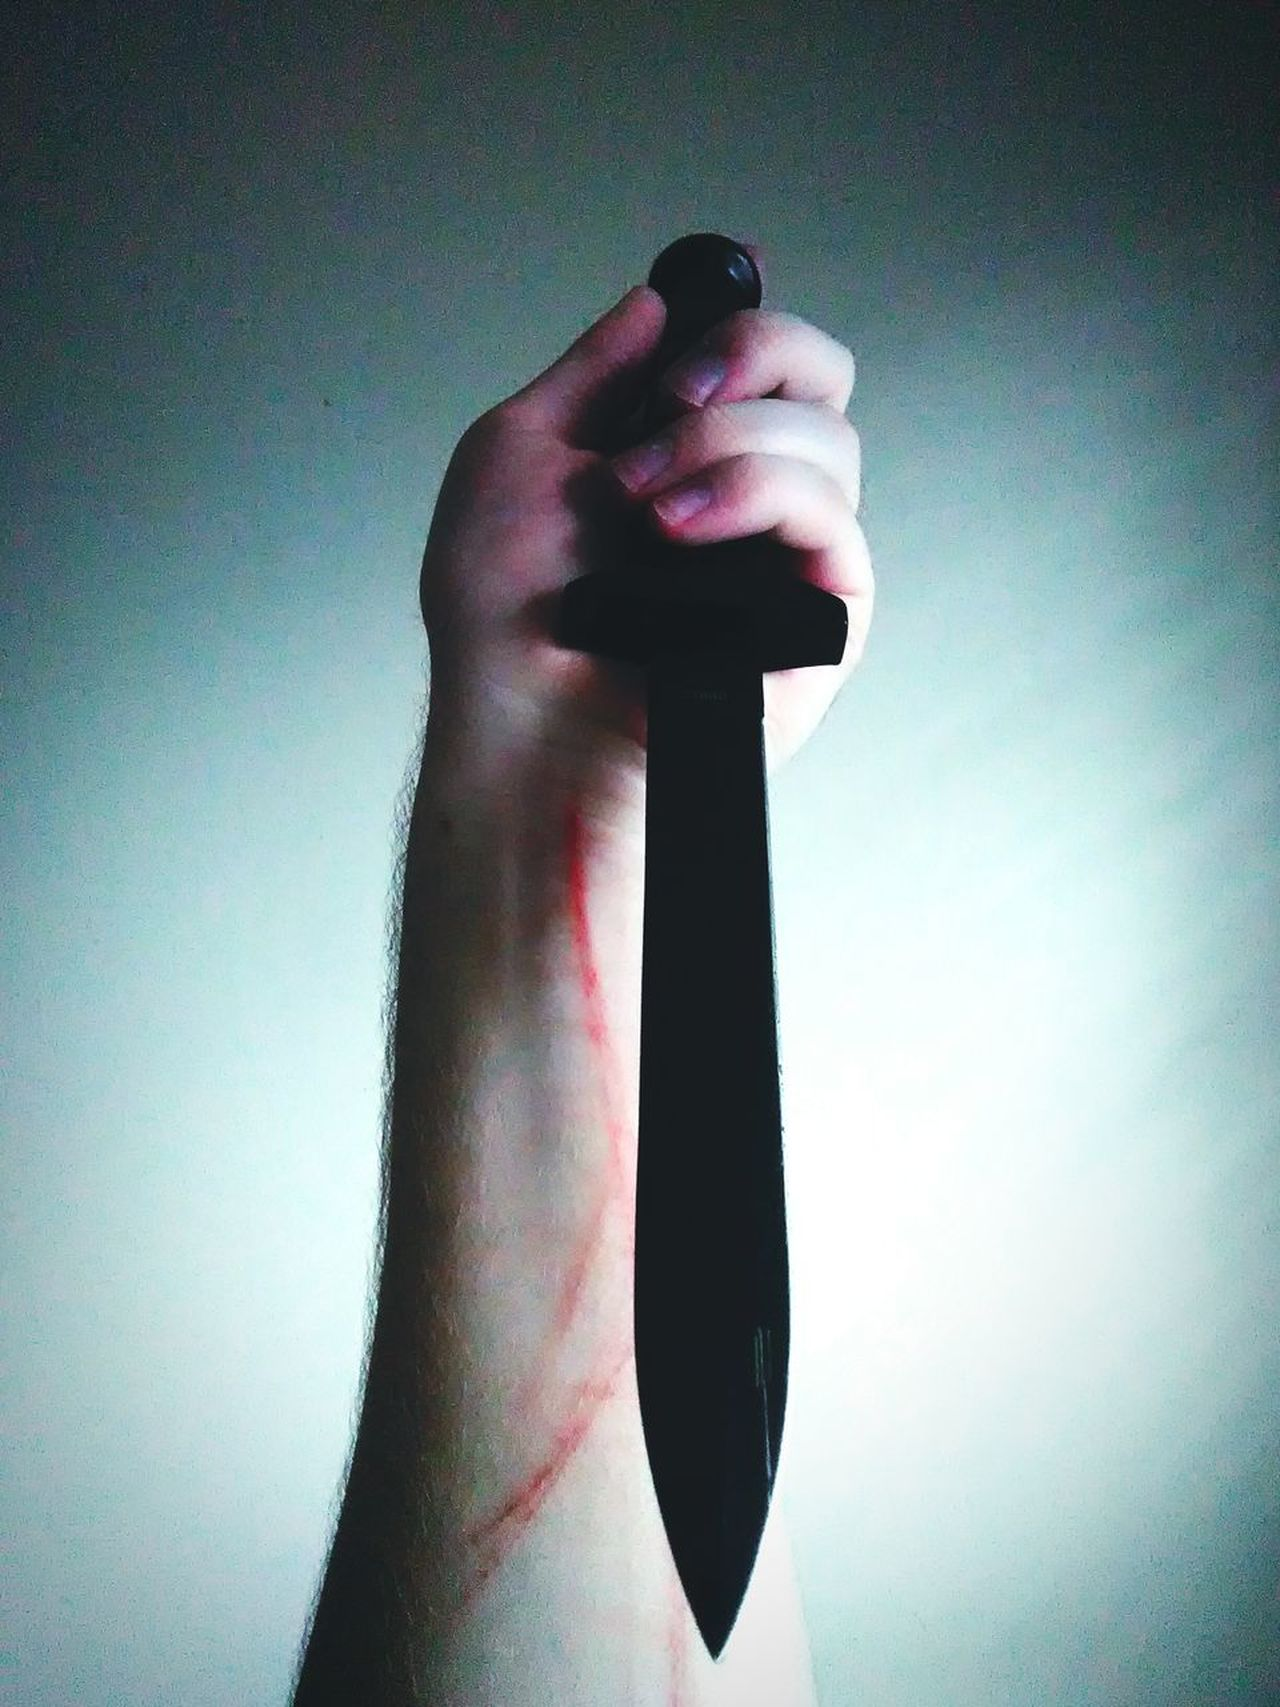 Human Body Part Human Hand One Person People Indoors  Adult Adults Only Close-up One Man Only Young Adult Day Injury Love Regret Hand Pain Studio Shot Suicide Suicideawareness Suicide Prevention Suicideprevention Suicide Awareness Suicide Prevention Week Self Harm Self Harm Recovery